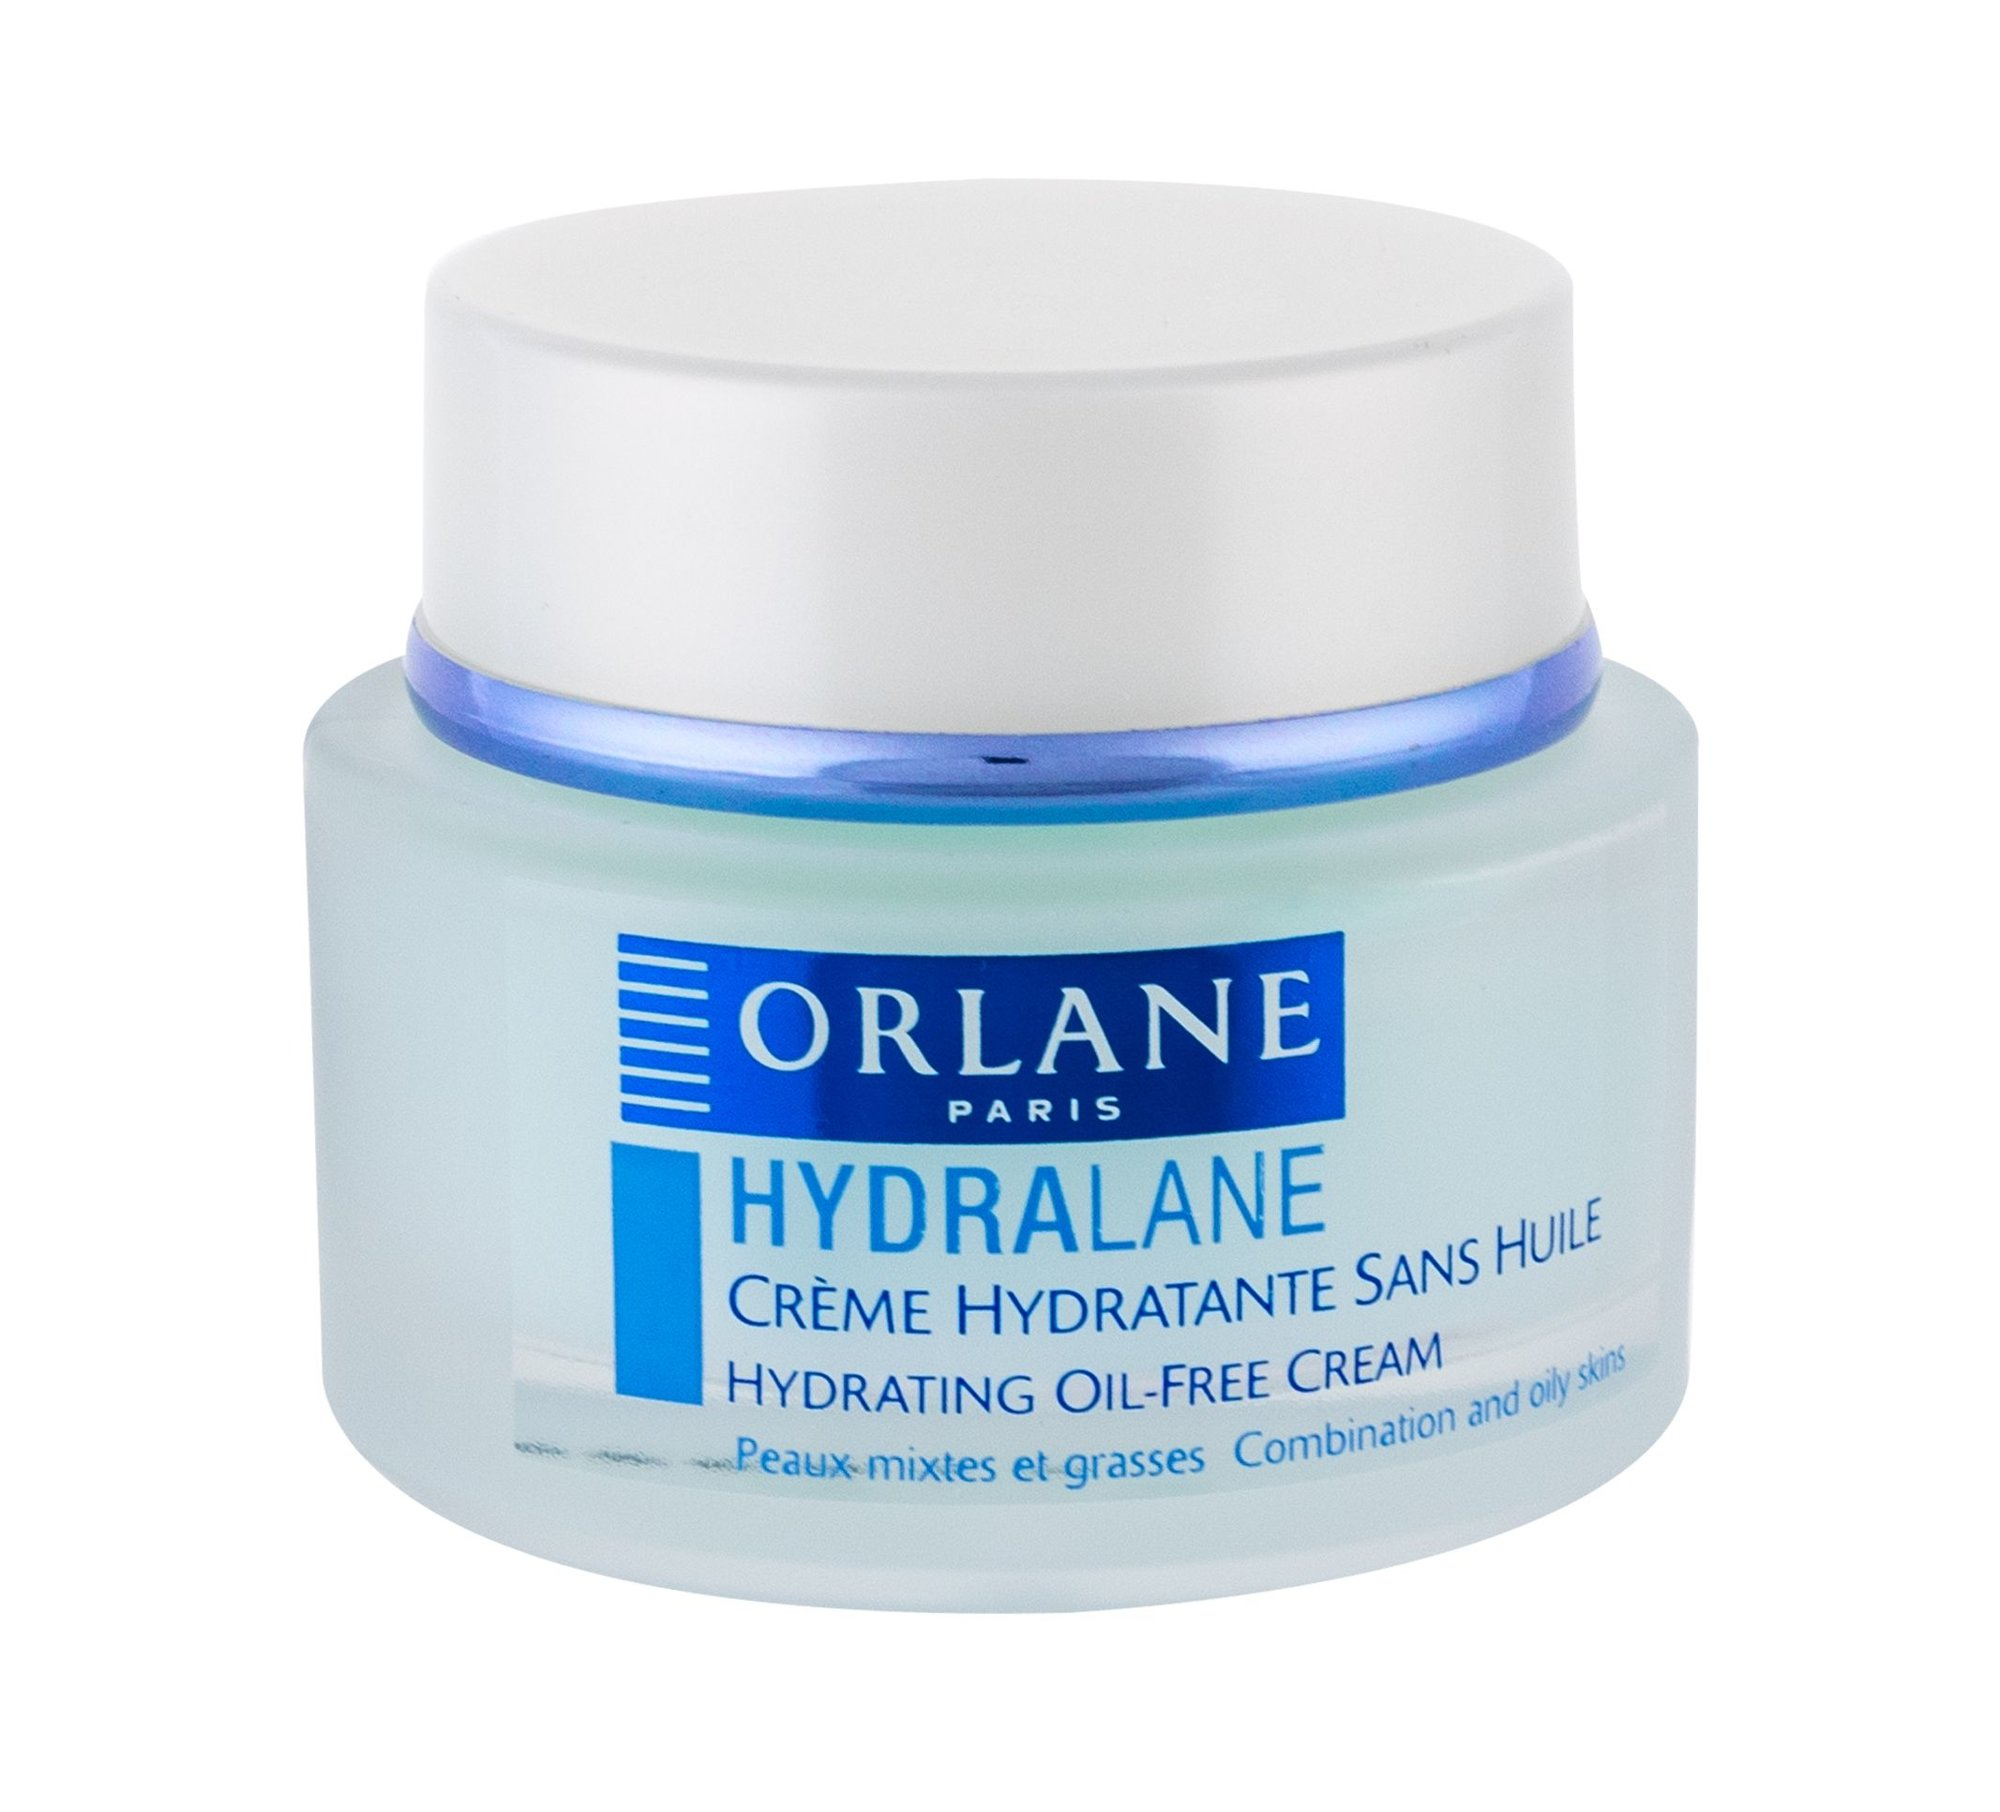 Orlane Hydralane Day Cream 50ml